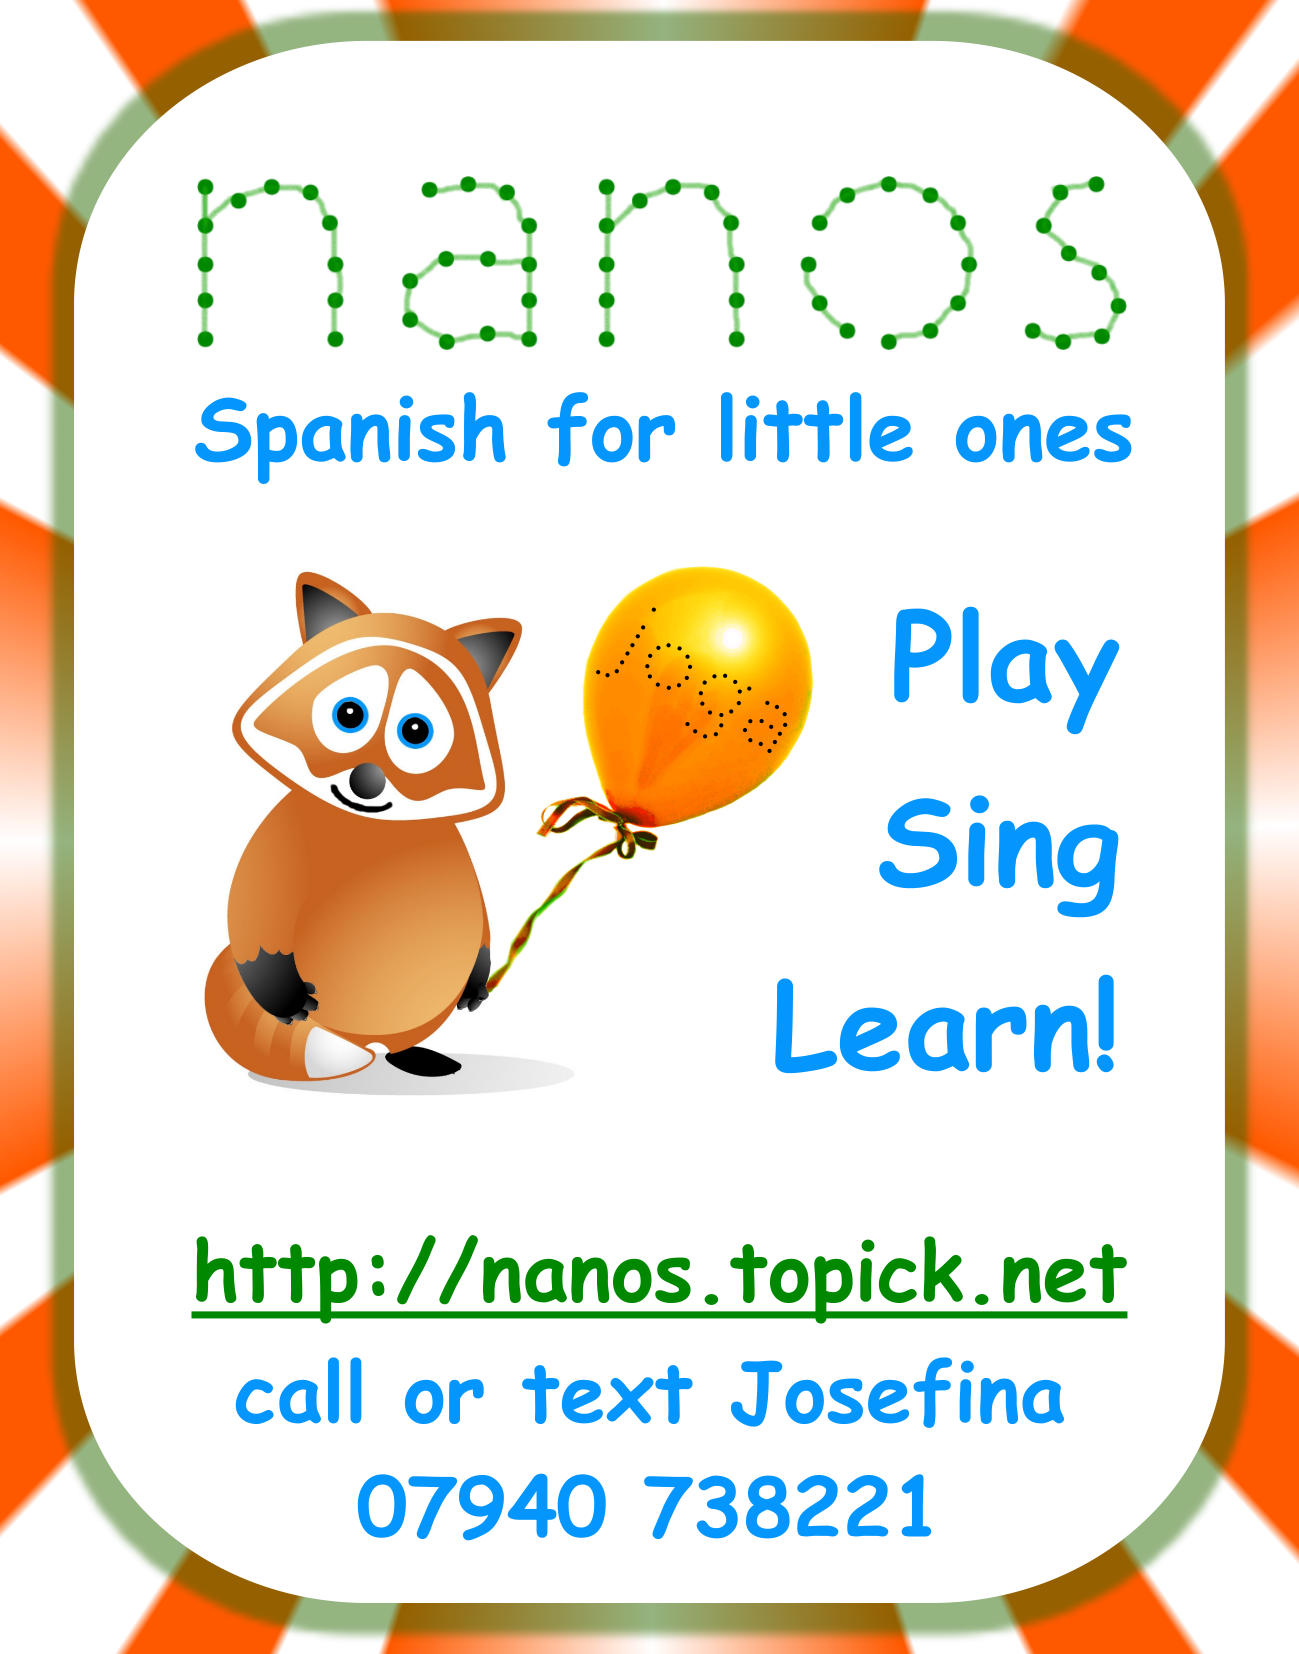 Nanos Spanisch Language Course Class Session Teach Learn